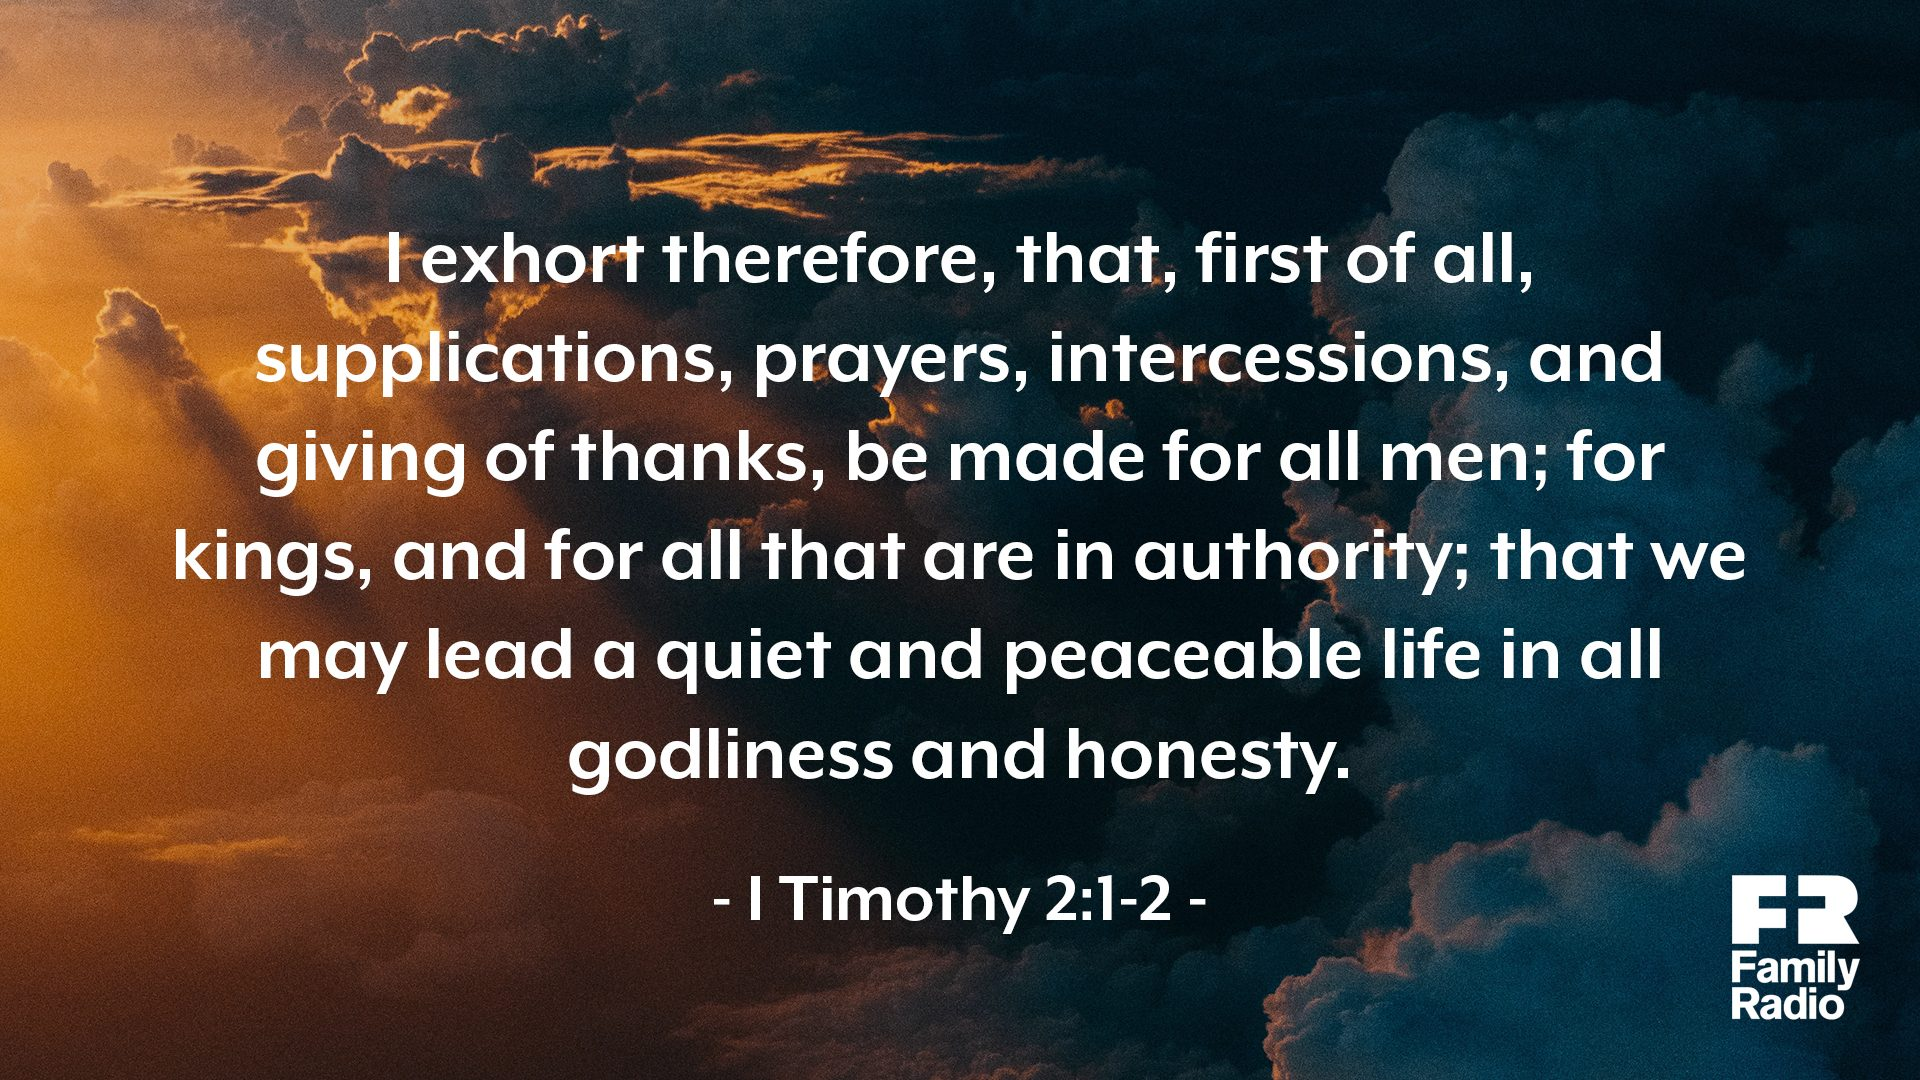 """I exhort therefore, that, first of all, supplications, prayers, intercessions, and giving of thanks, be made for all men; for kings, and for all that are in authority; that we may lead a quiet and peaceable life in all godliness and honesty."""